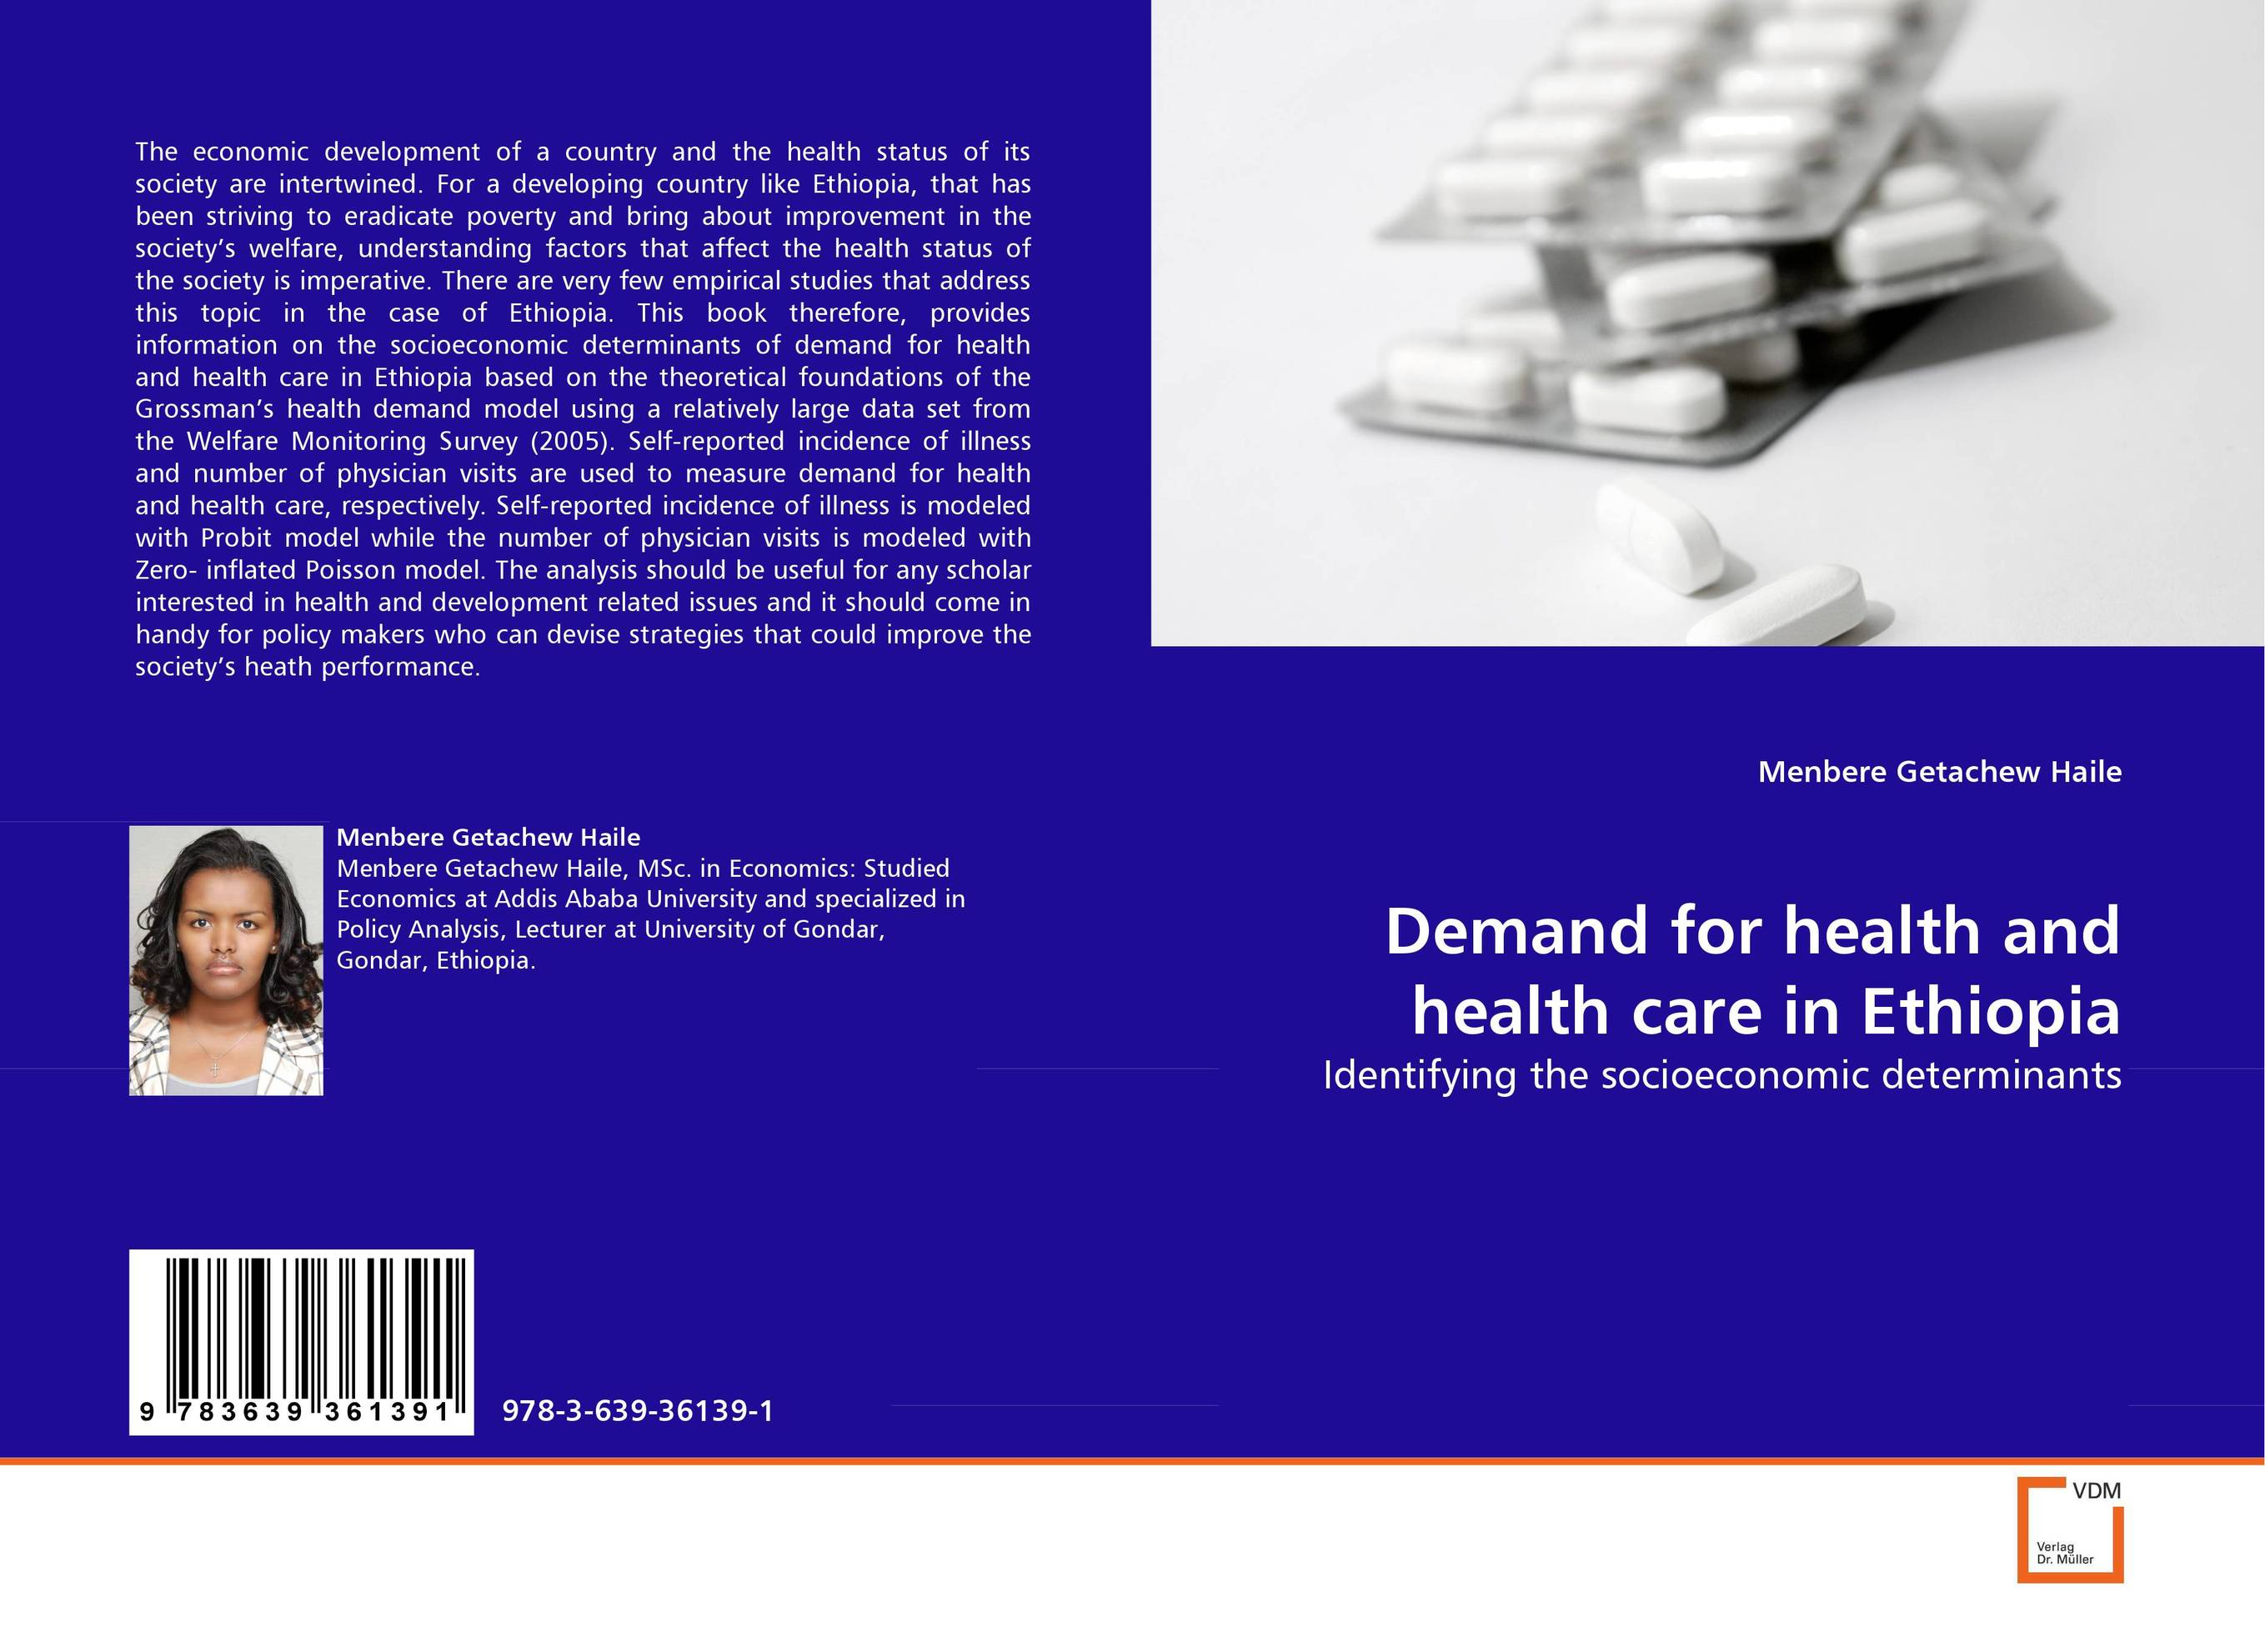 Demand for health and health care in Ethiopia prostate health devices is prostate removal prostatitis mainly for the prostate health and prostatitis health capsule